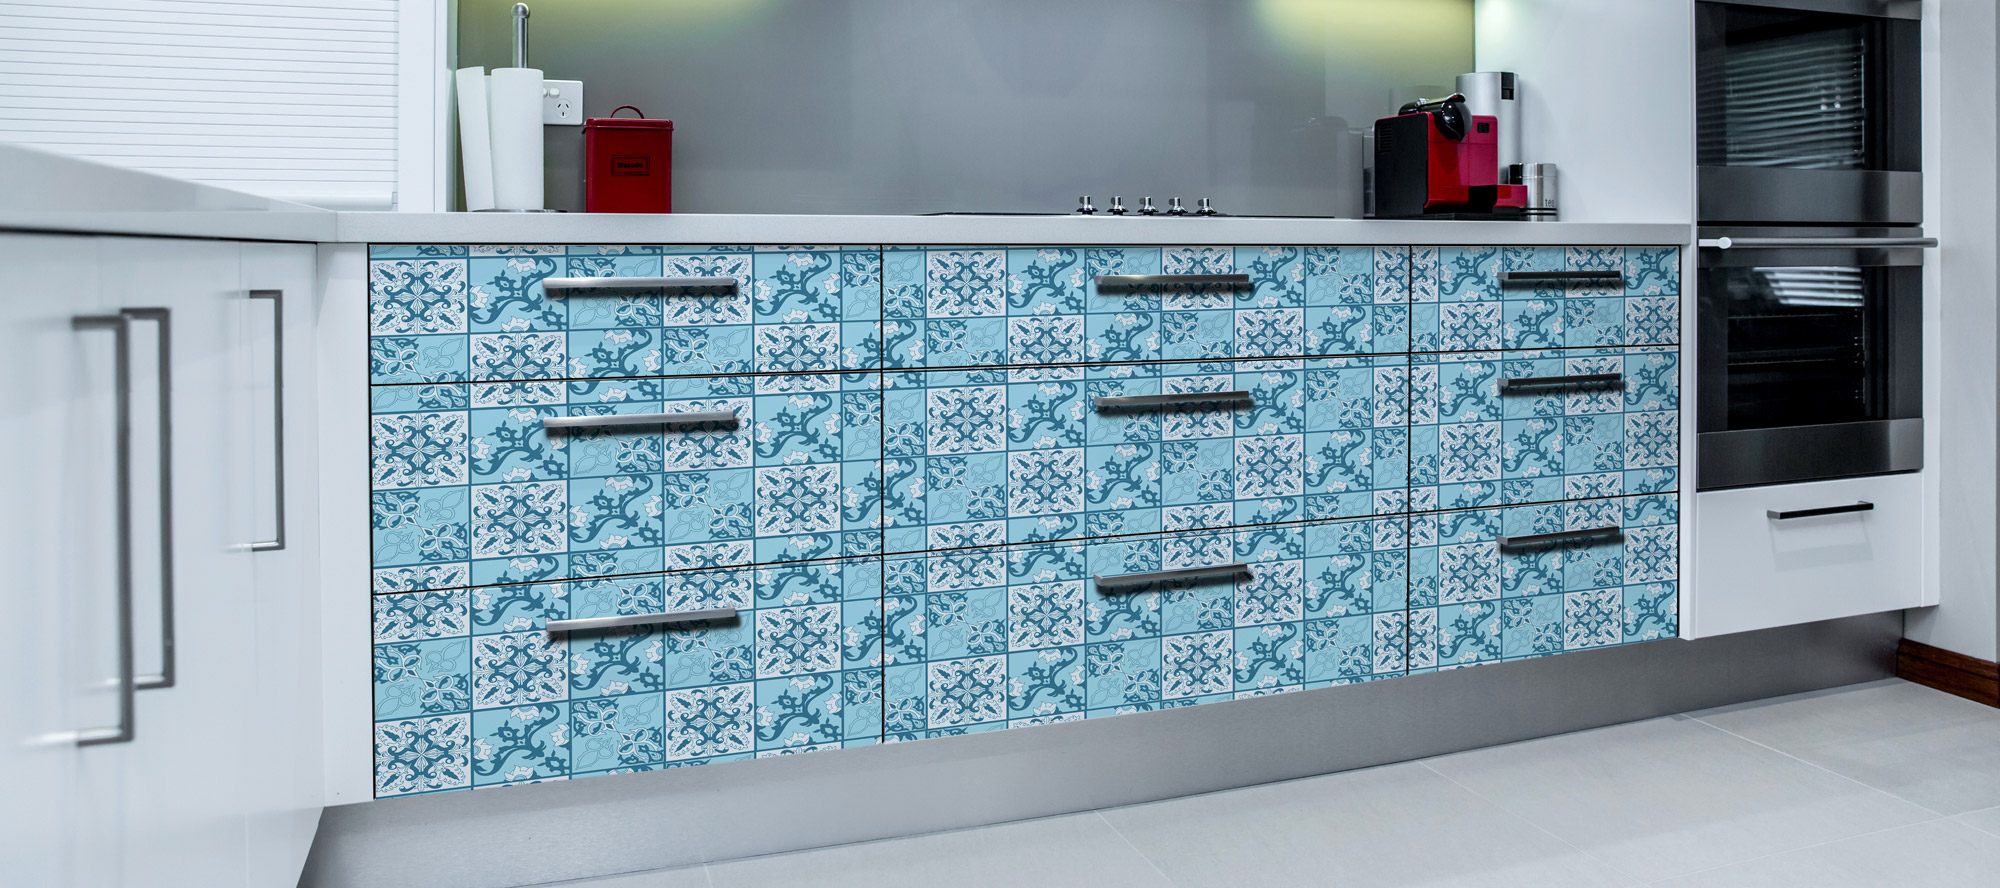 D'infinity, Abstrakt Kreatif Floral Laminates For Kitchen-Sundek International